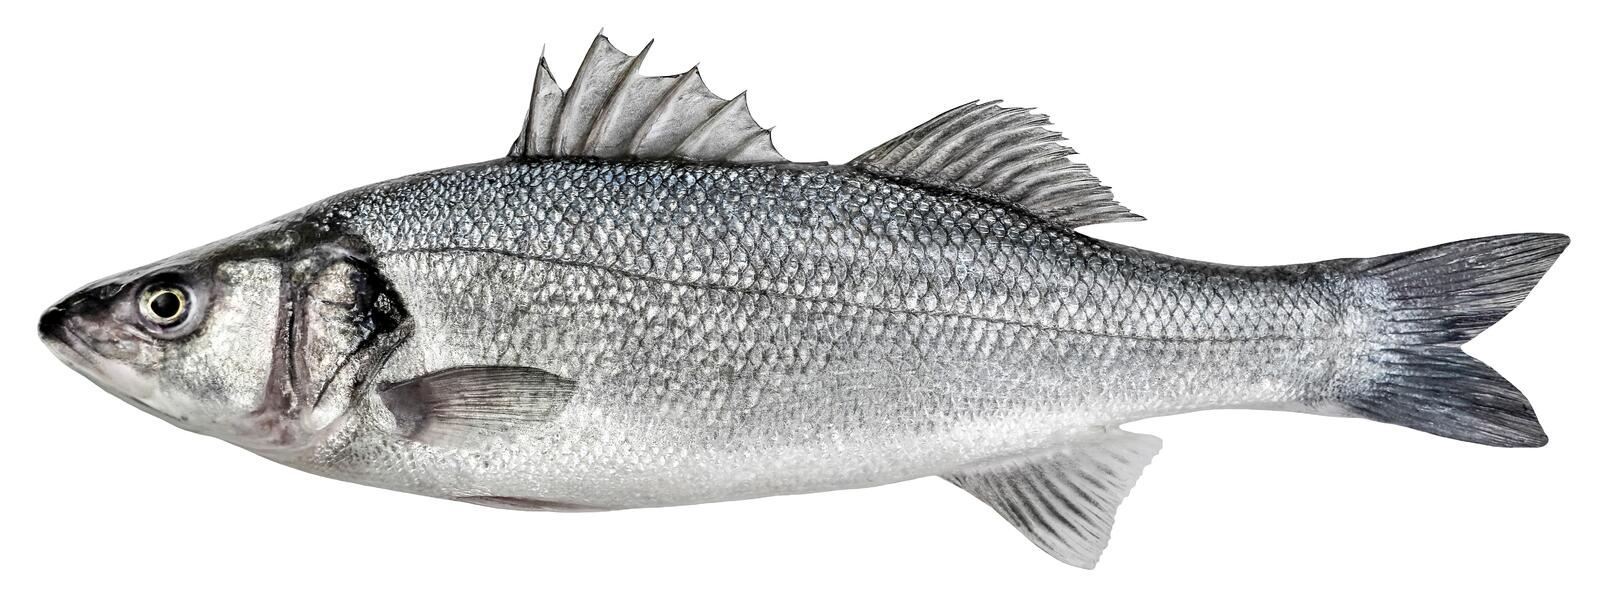 Sea bass fish. European bass isolated on white background royalty free stock photo